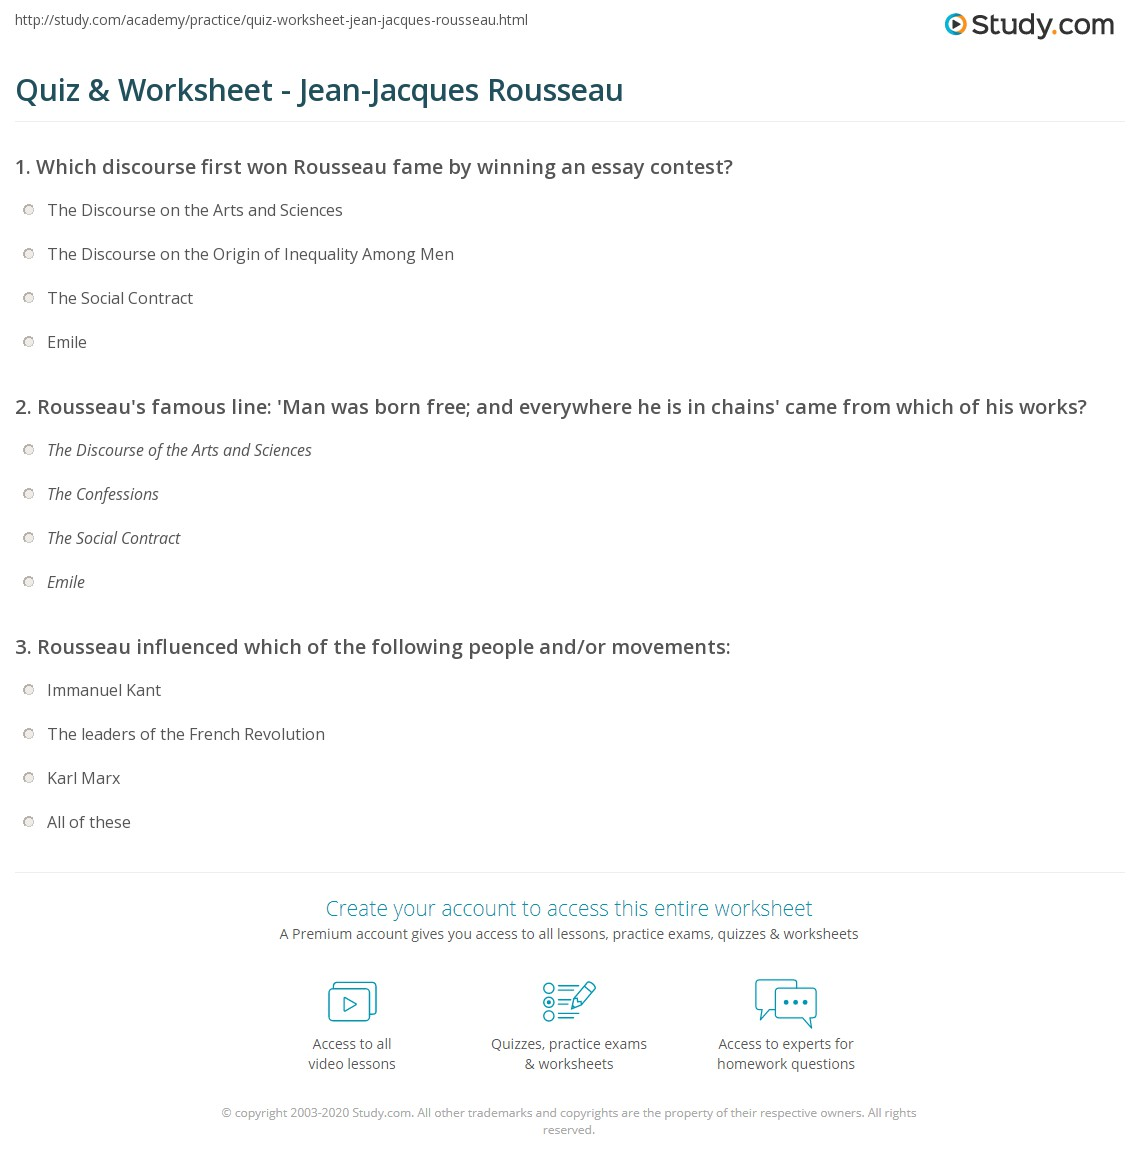 quiz worksheet jean jacques rousseau com rousseau s famous line man was born and everywhere he is in chains came from which of his works